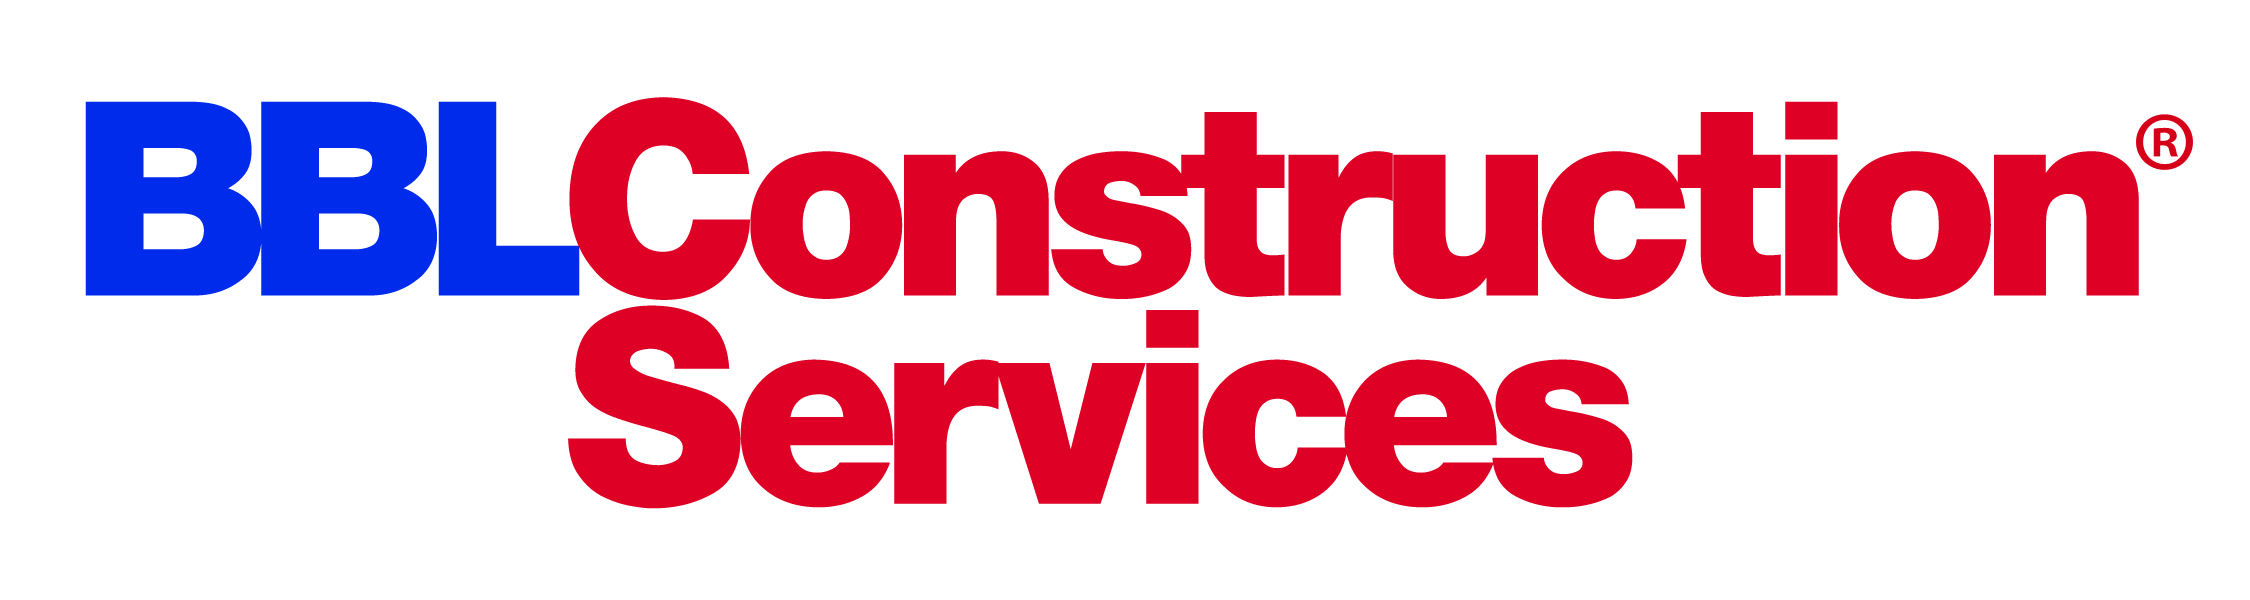 BBL Construction Services Logo